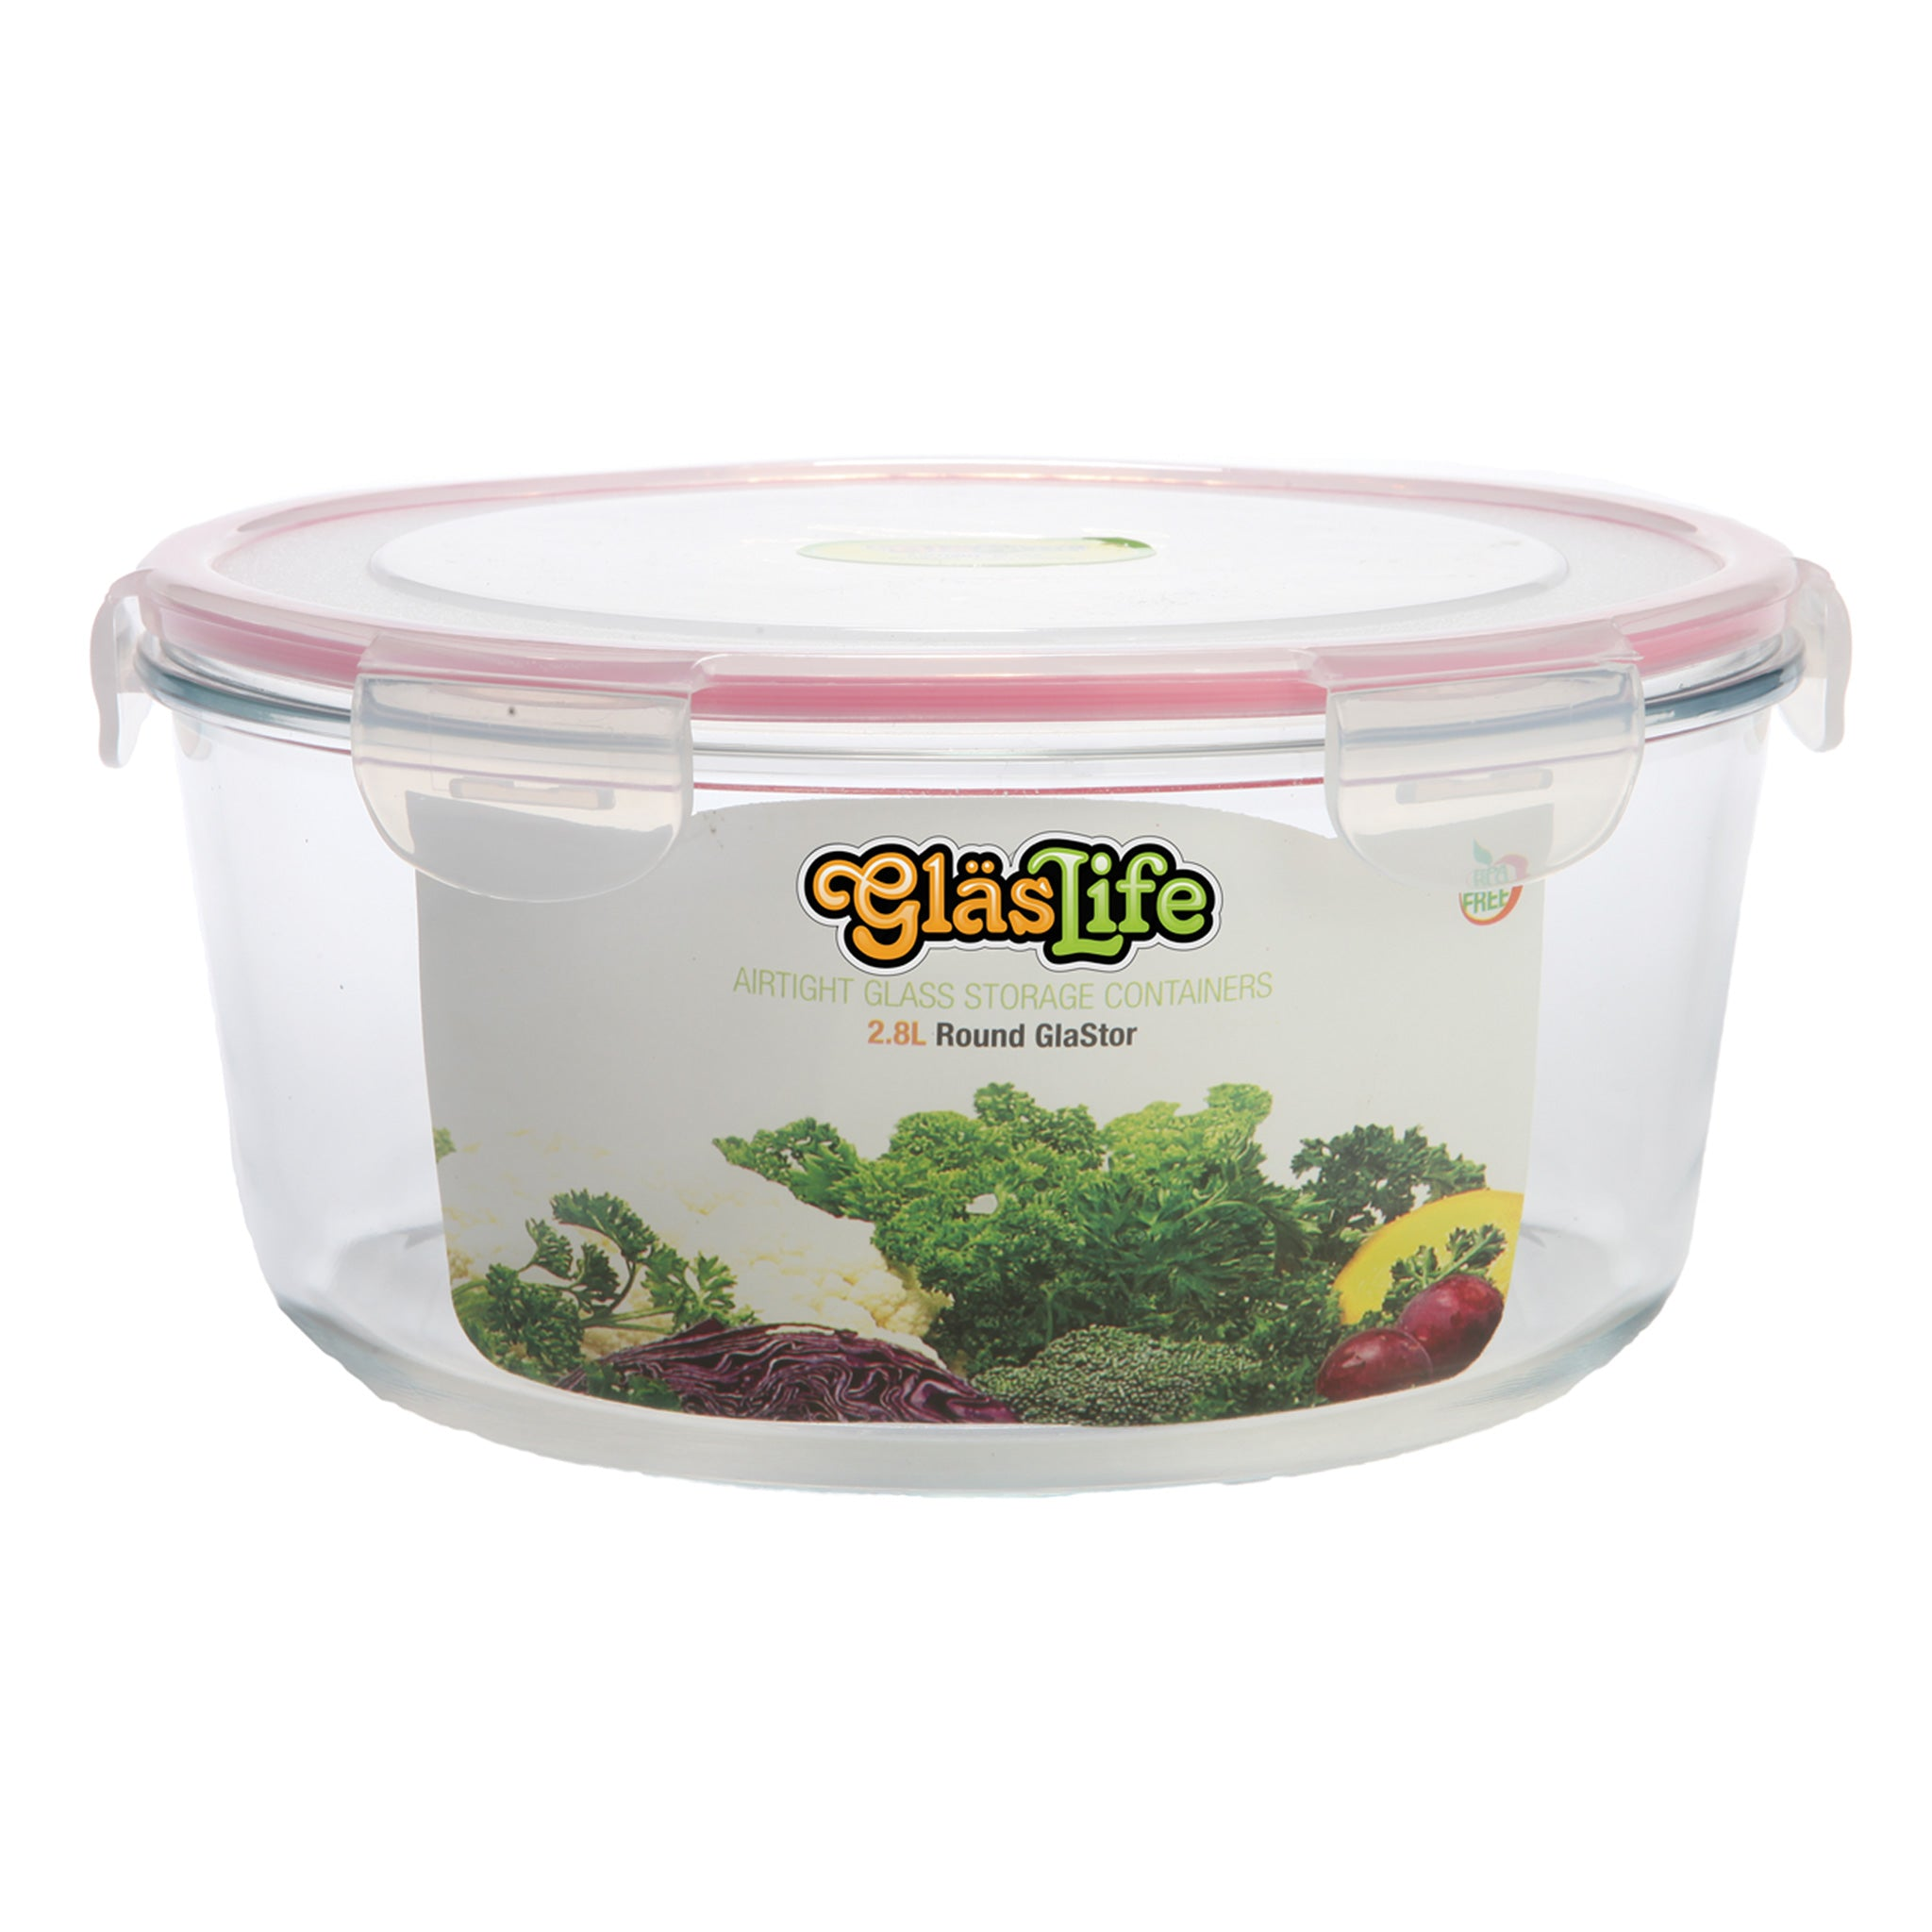 GlasLife® Air-Tight Glass Storage Container - Round GLC28 X-Large 95 oz / 2.8 L